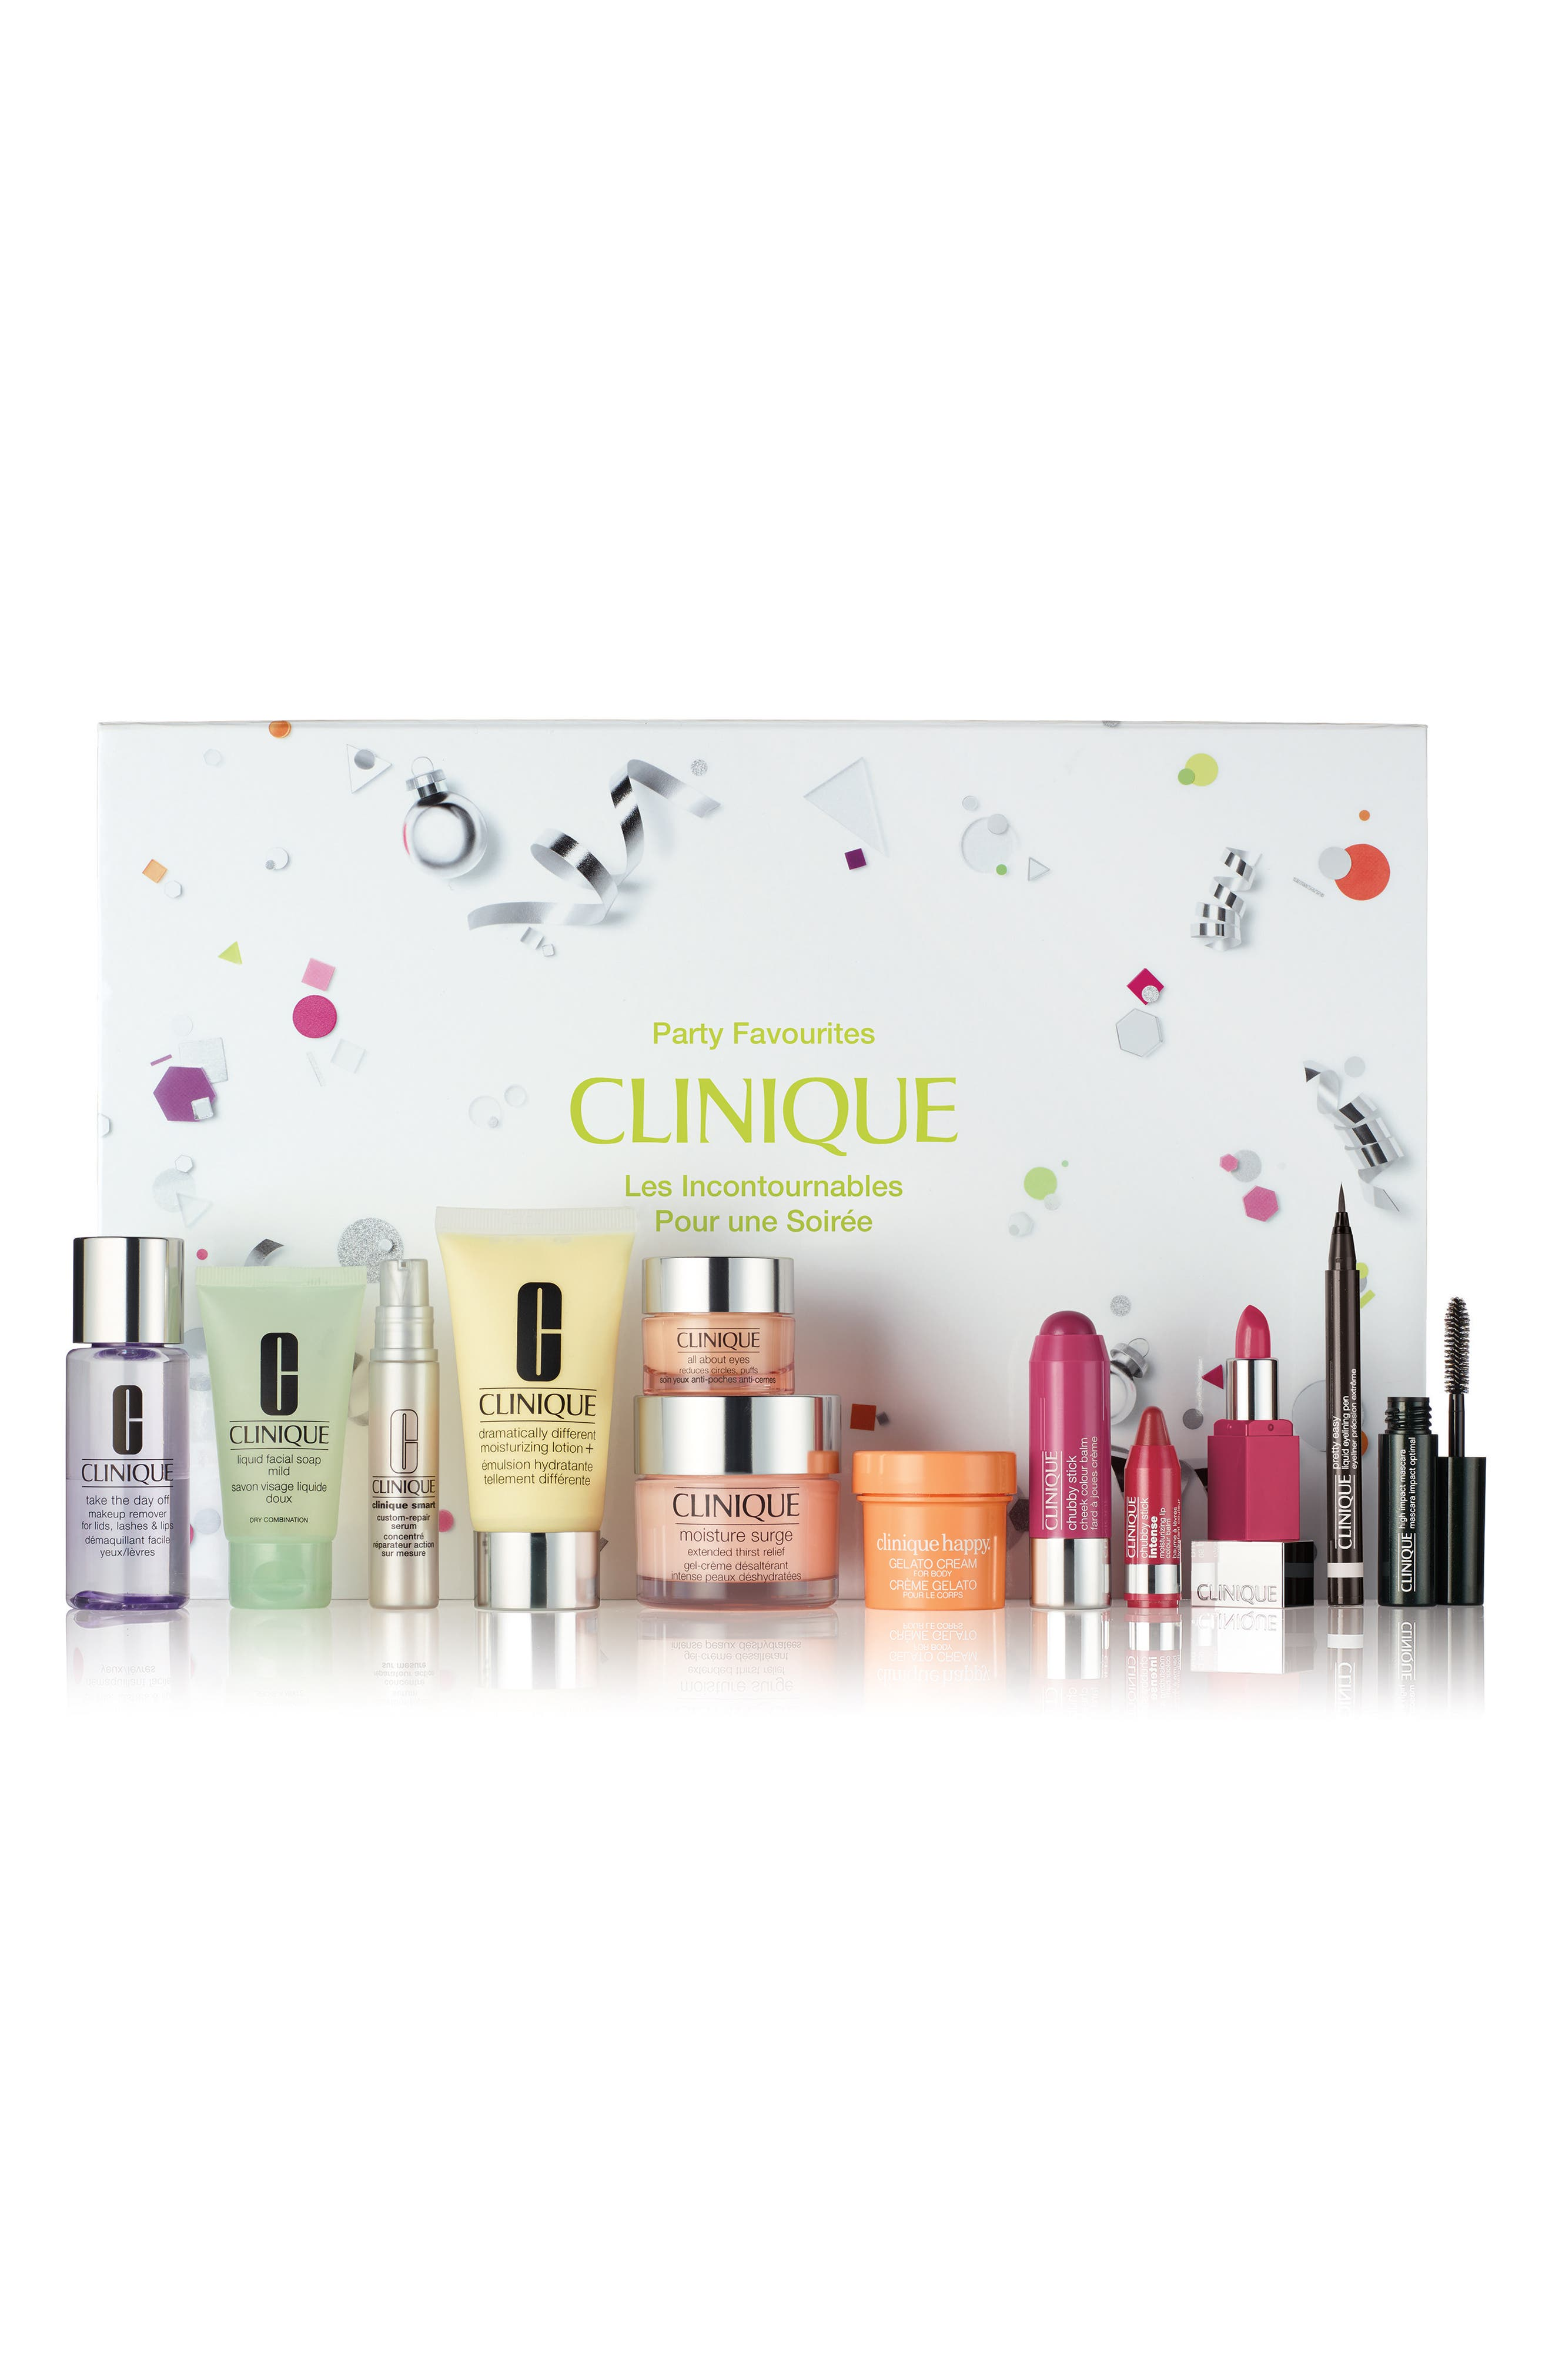 Alternate Image 1 Selected - Clinique Party Favorites Collection (Purchase with Clinique Purchase)